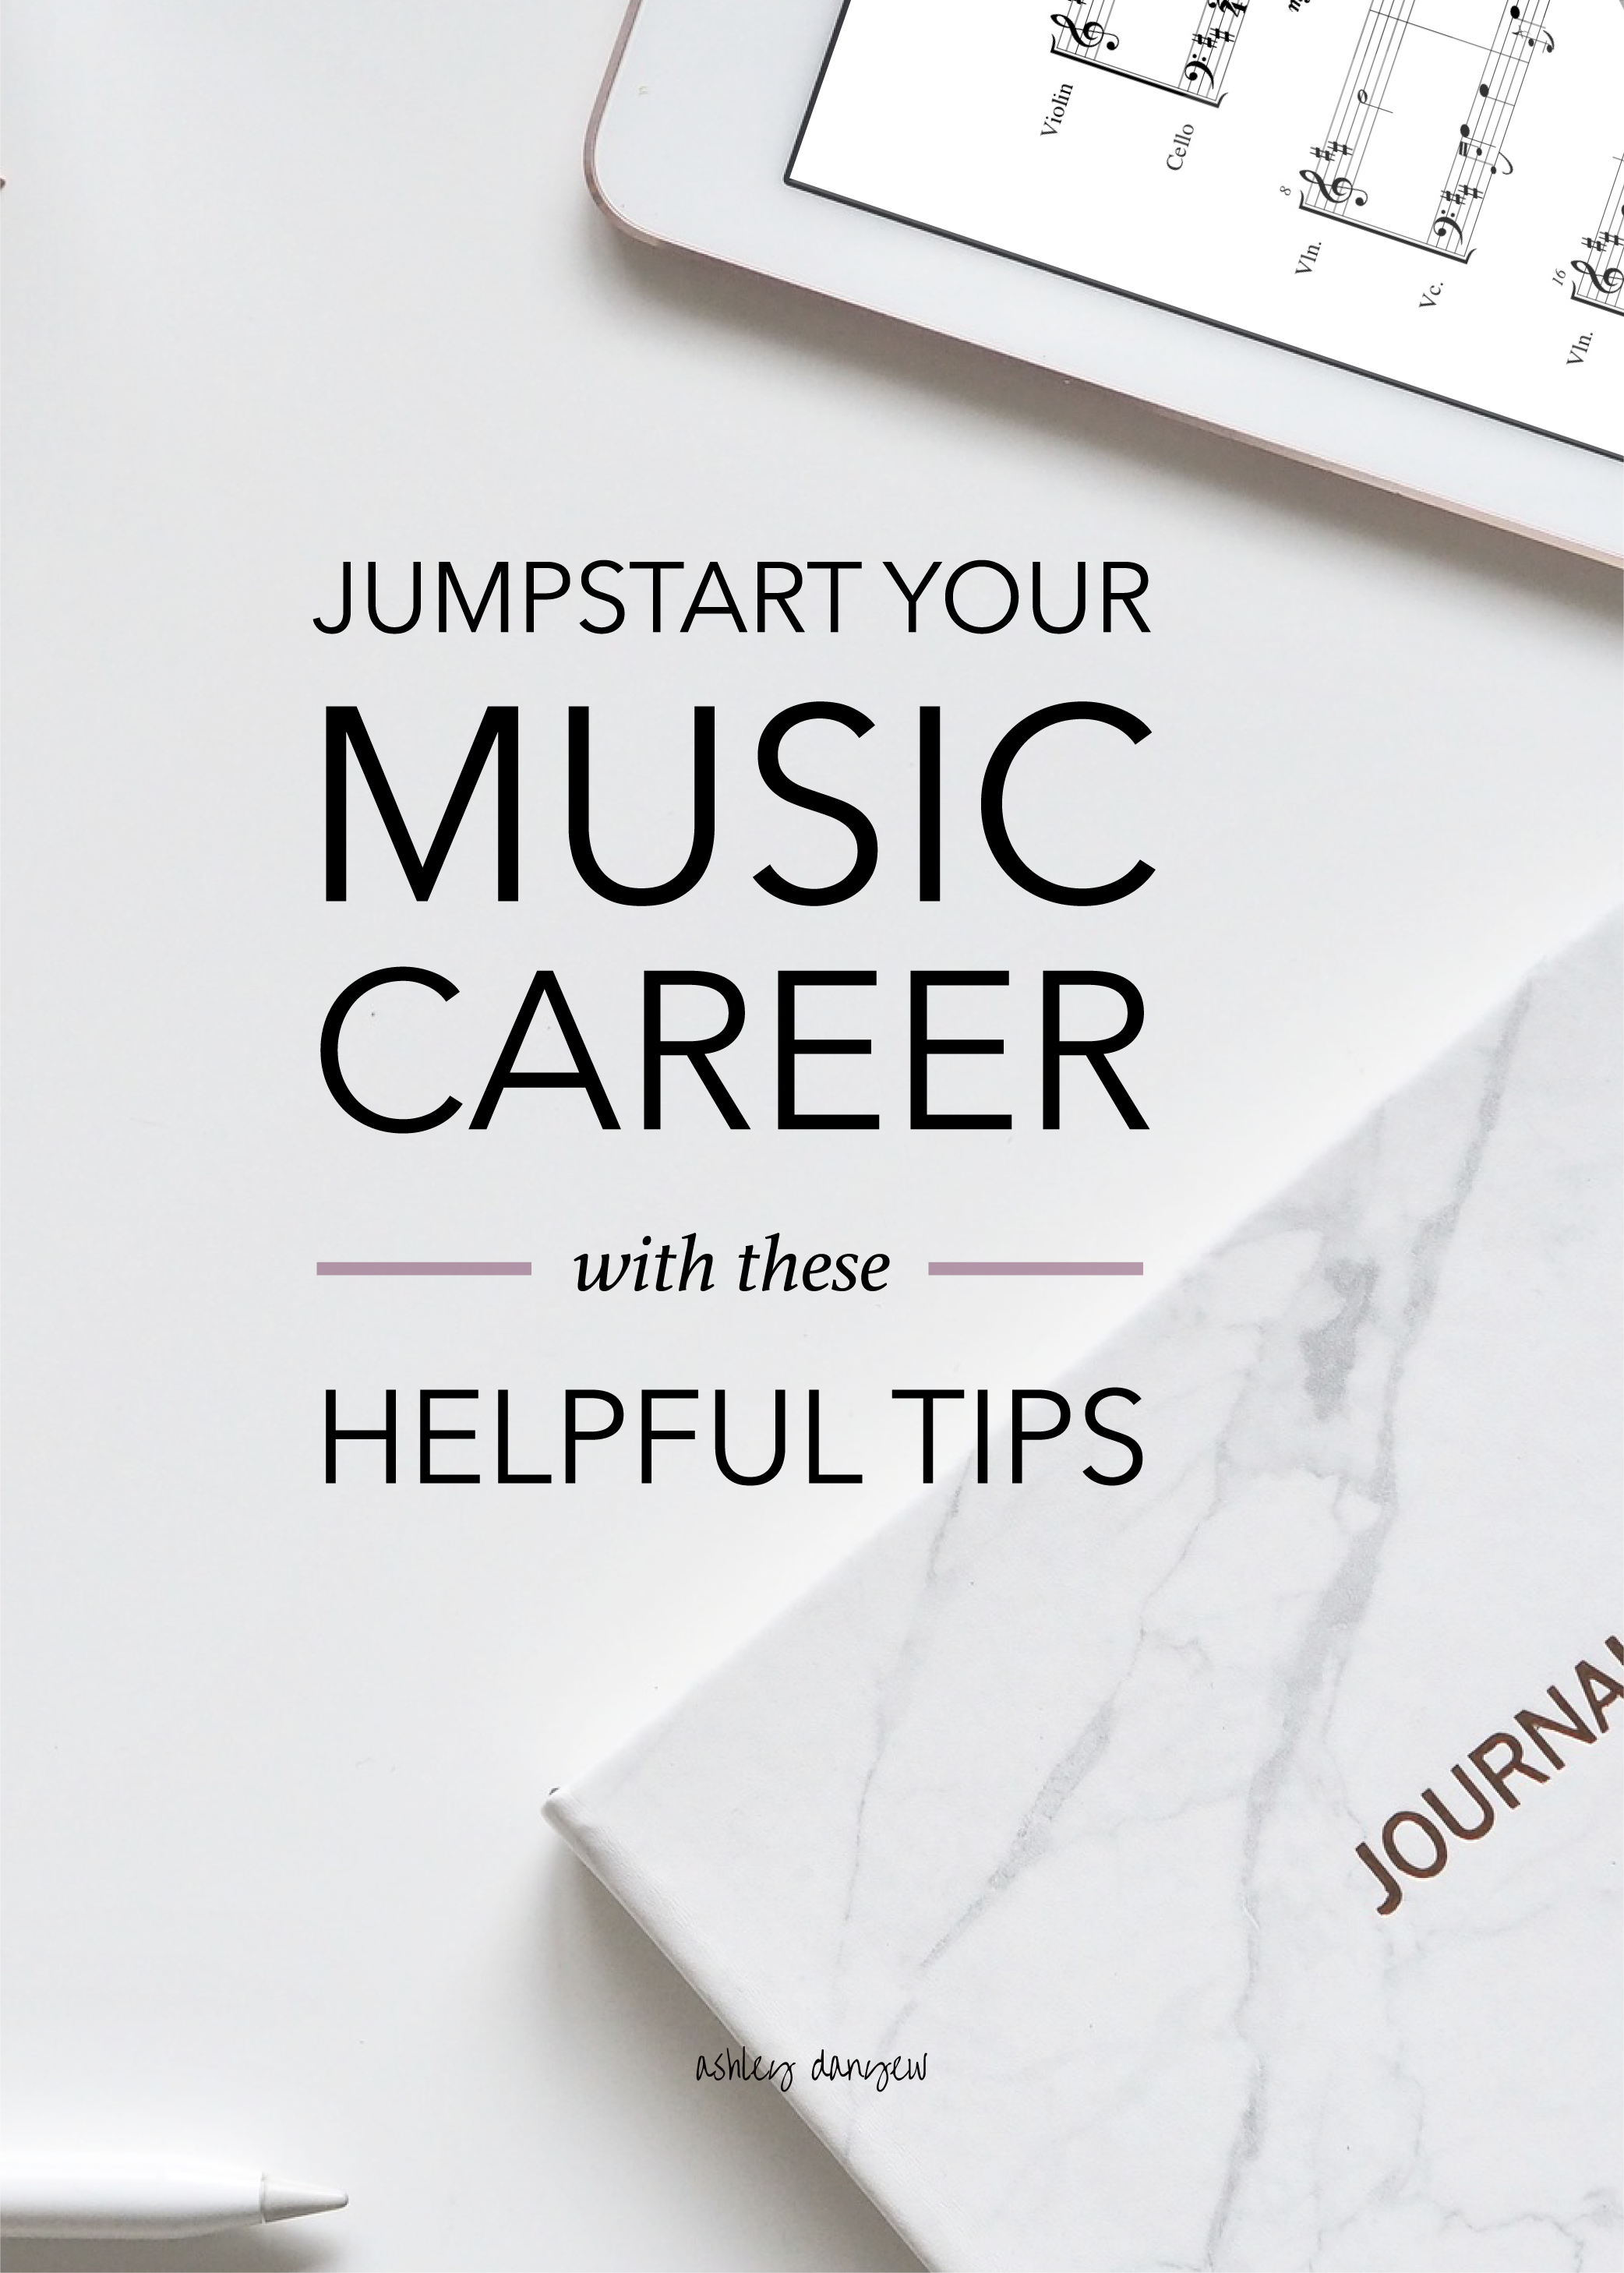 Jumpstart Your Music Career with These Helpful Tips